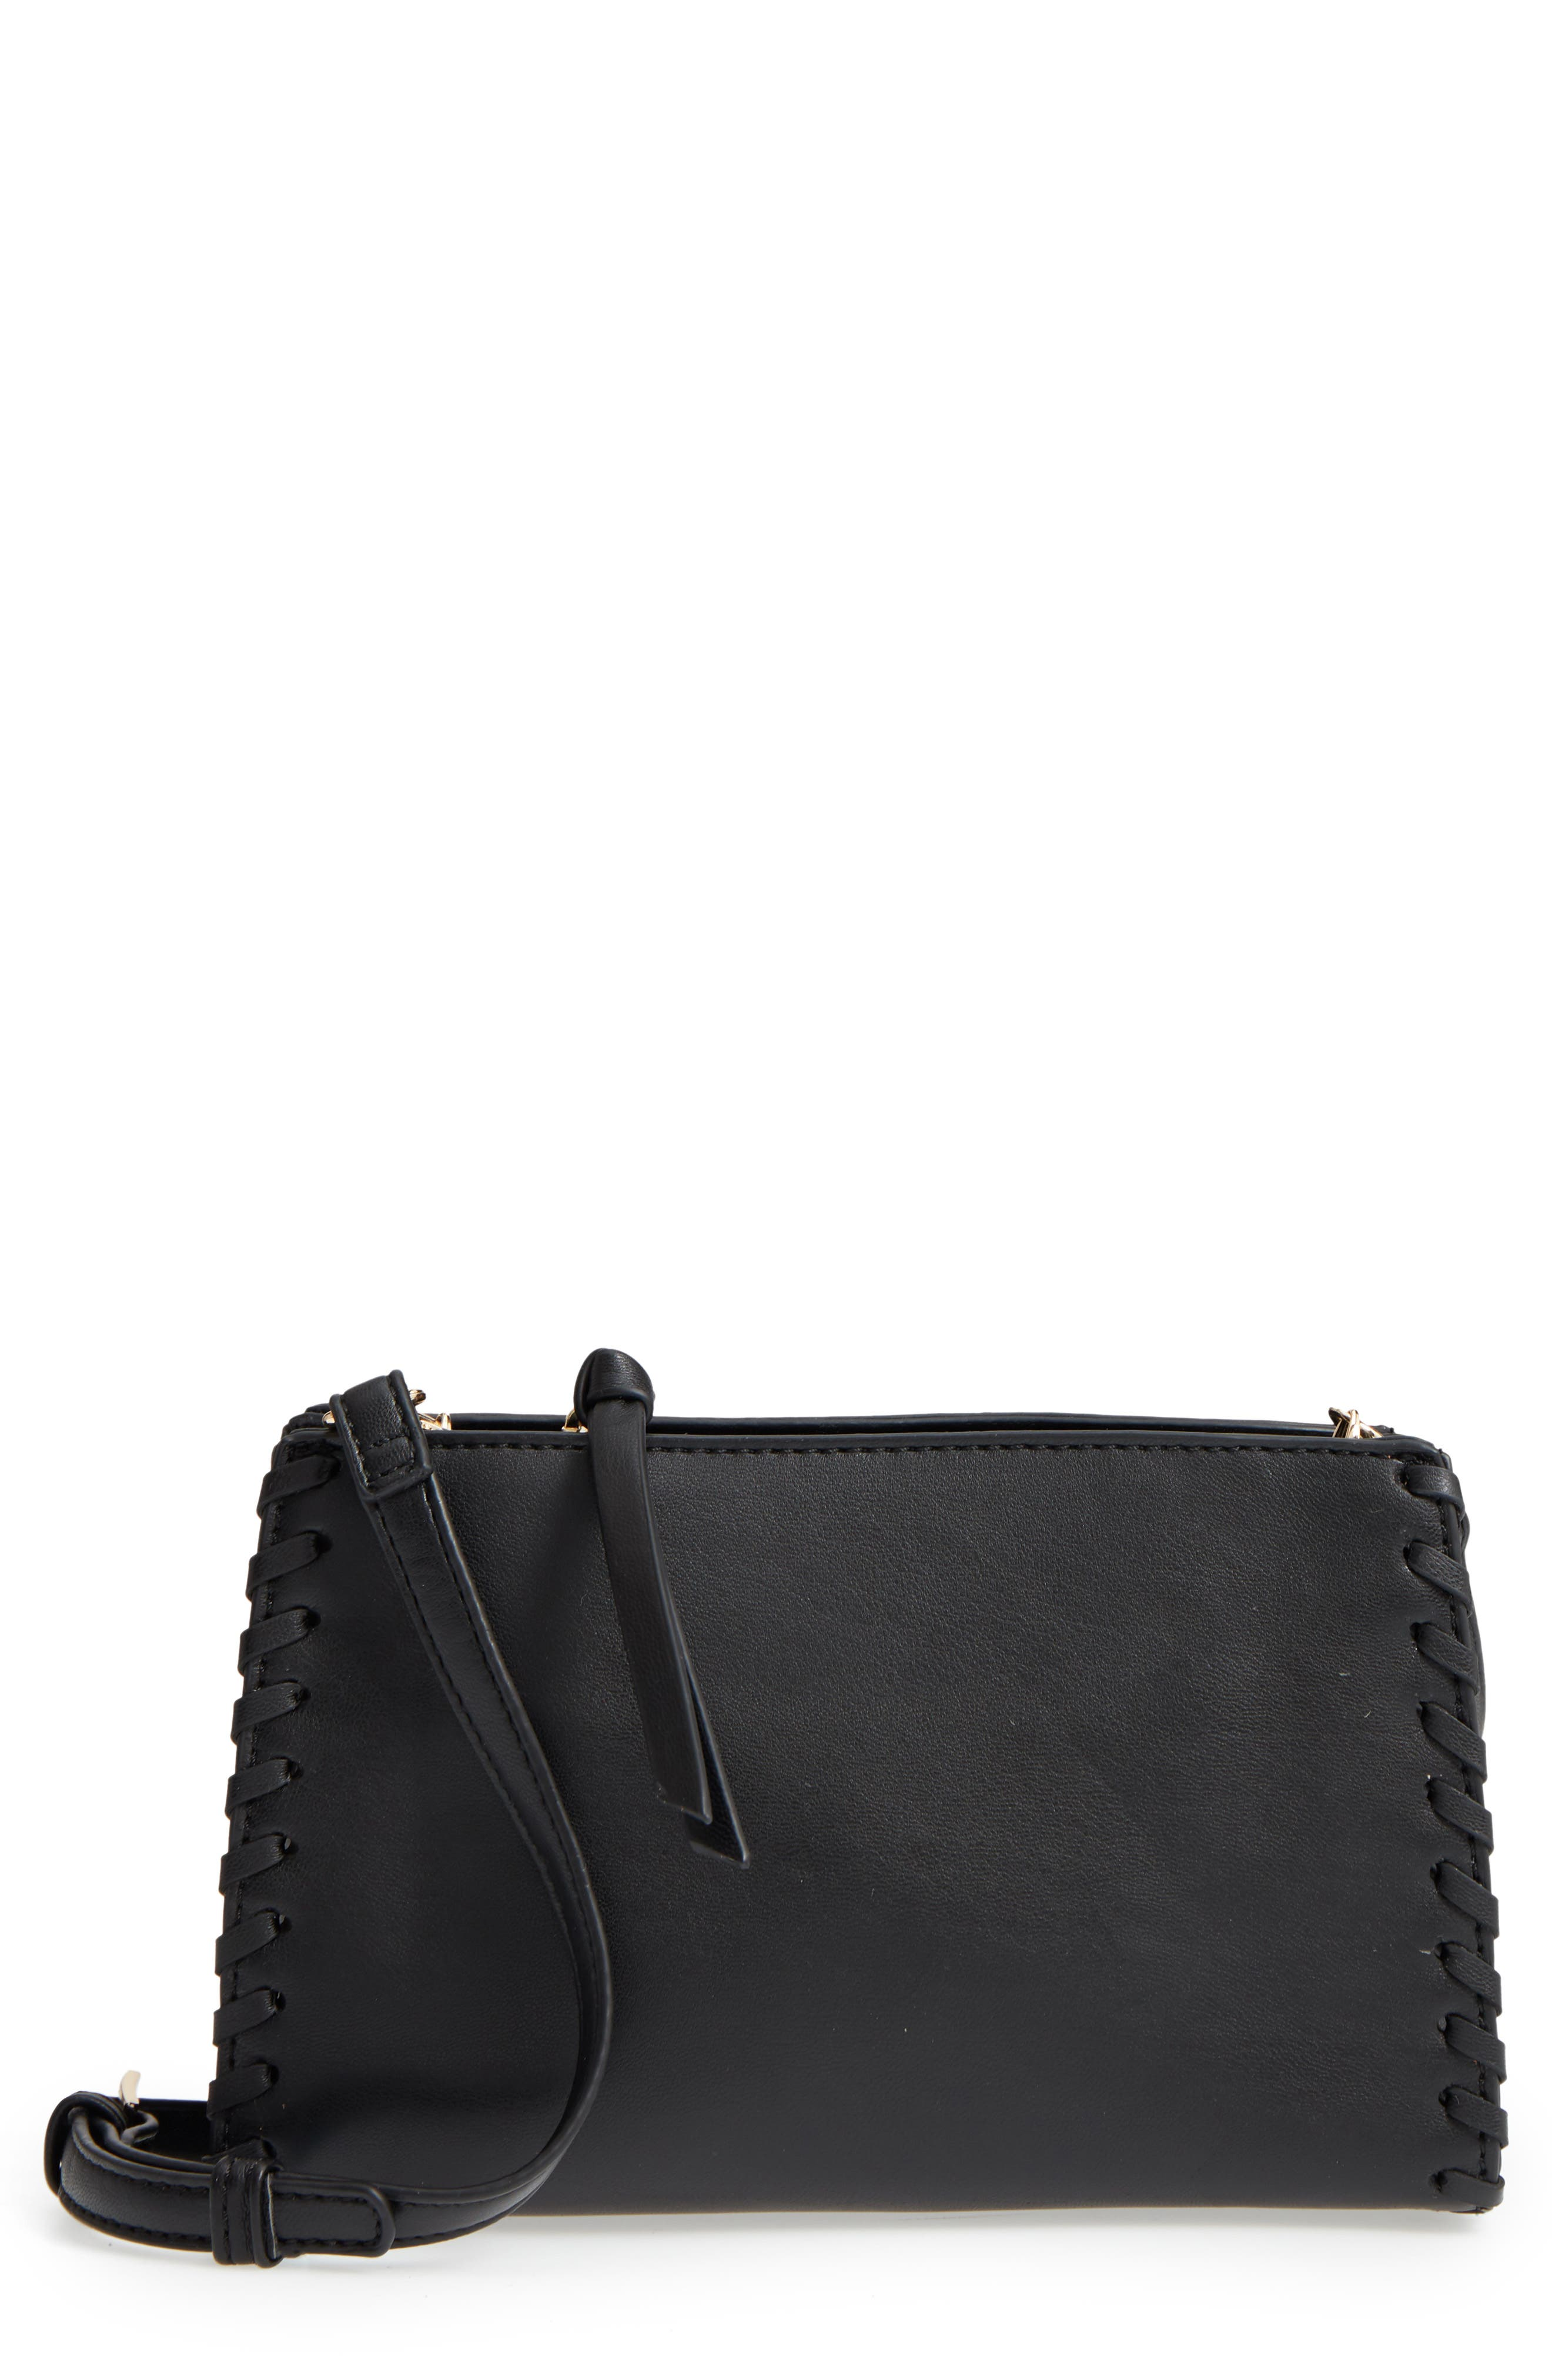 Cadence Whipstitch Faux Leather Crossbody Bag,                             Main thumbnail 1, color,                             Black